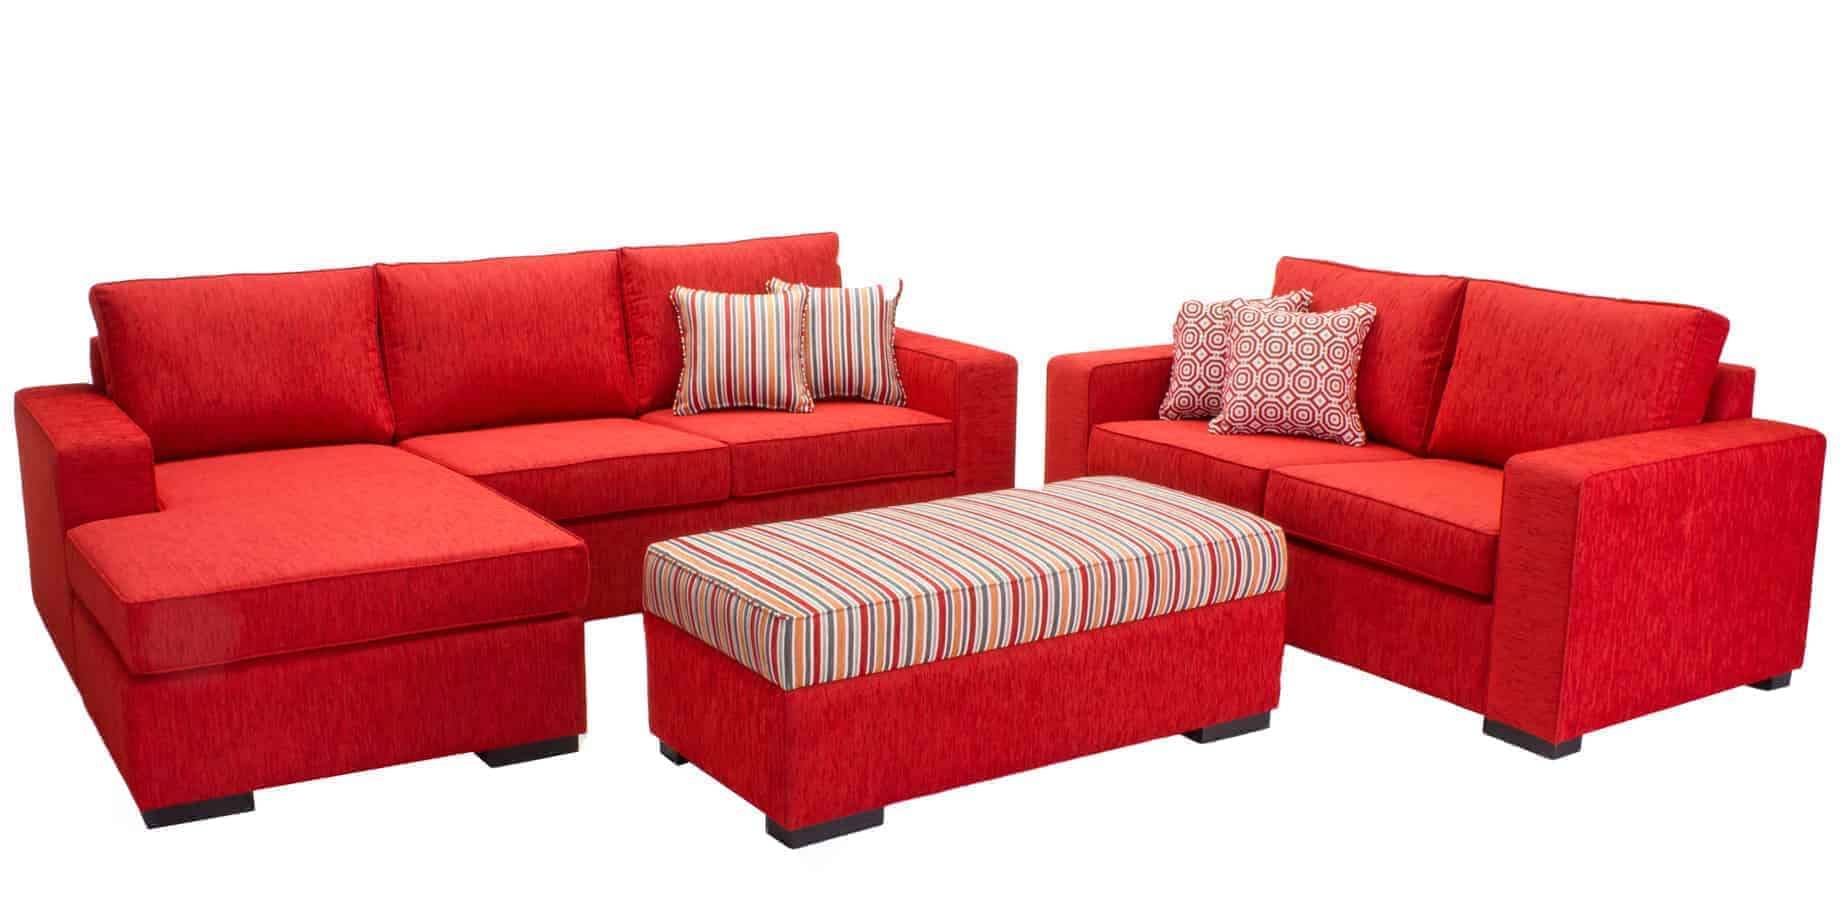 Red Modular Lounge — Buy Modular lounge suites from Sydney Lounge Specialists